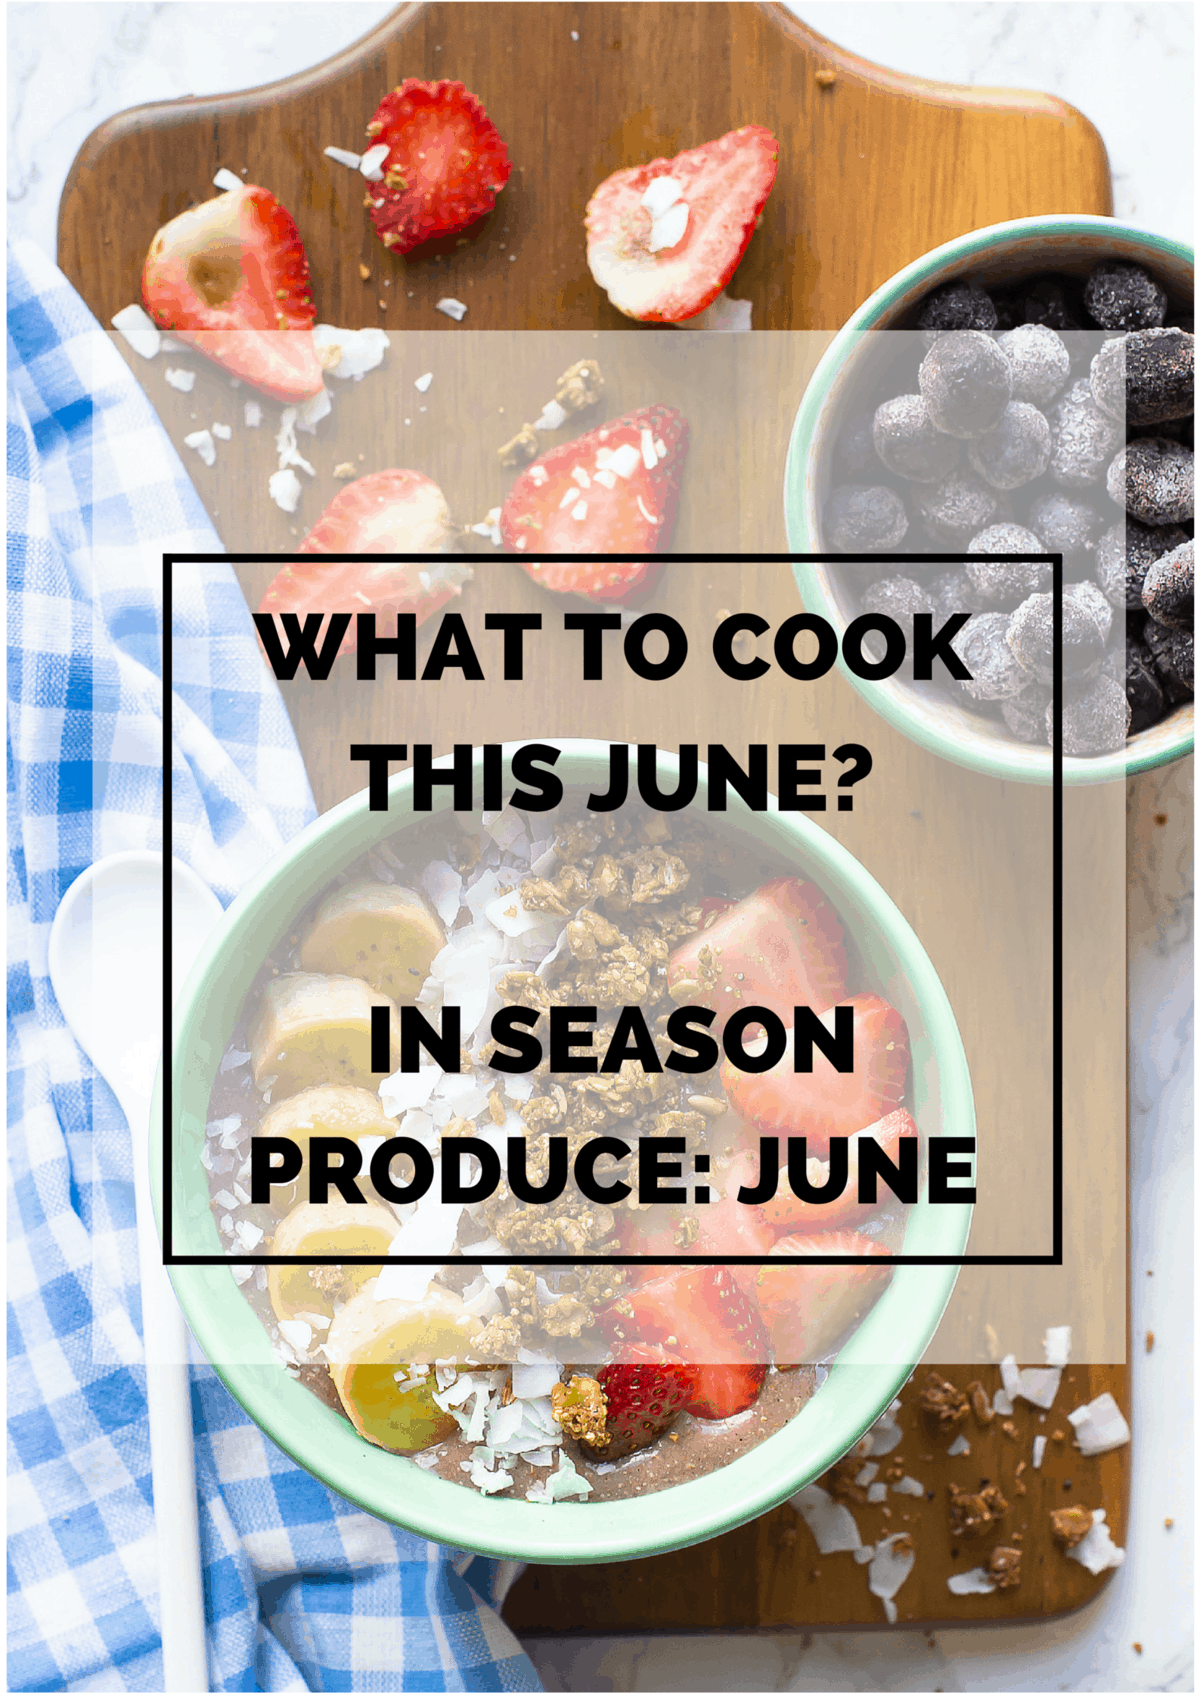 Here's your June Produce Guide: a list of what you should cook this June based on what produce is in season for fresh, delicious and healthy recipes!